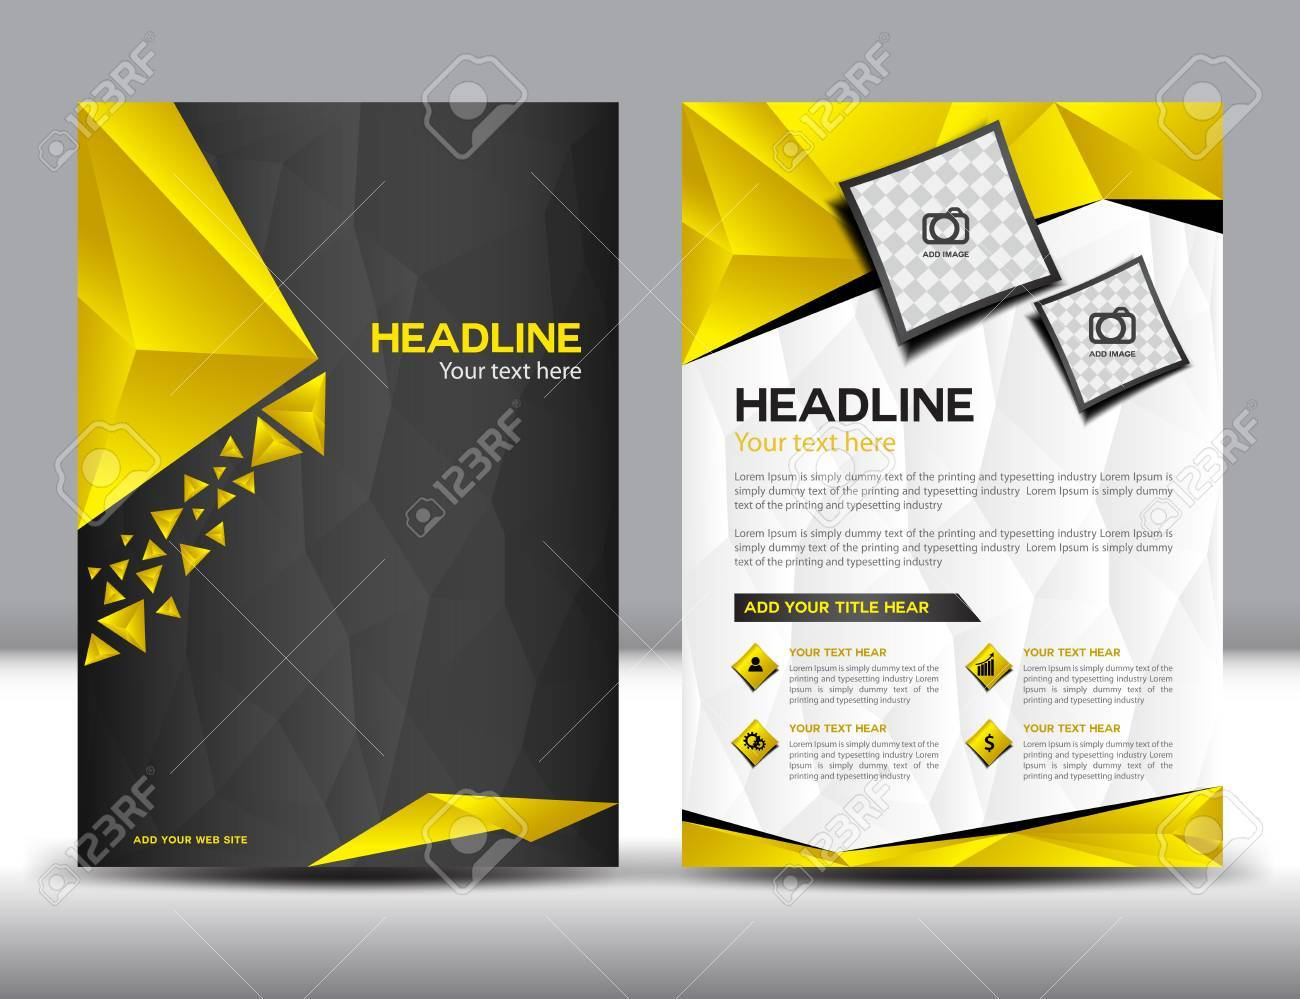 Black and yellow business brochure design layout template brochure black and yellow business brochure design layout template brochure design templatescover design accmission Choice Image